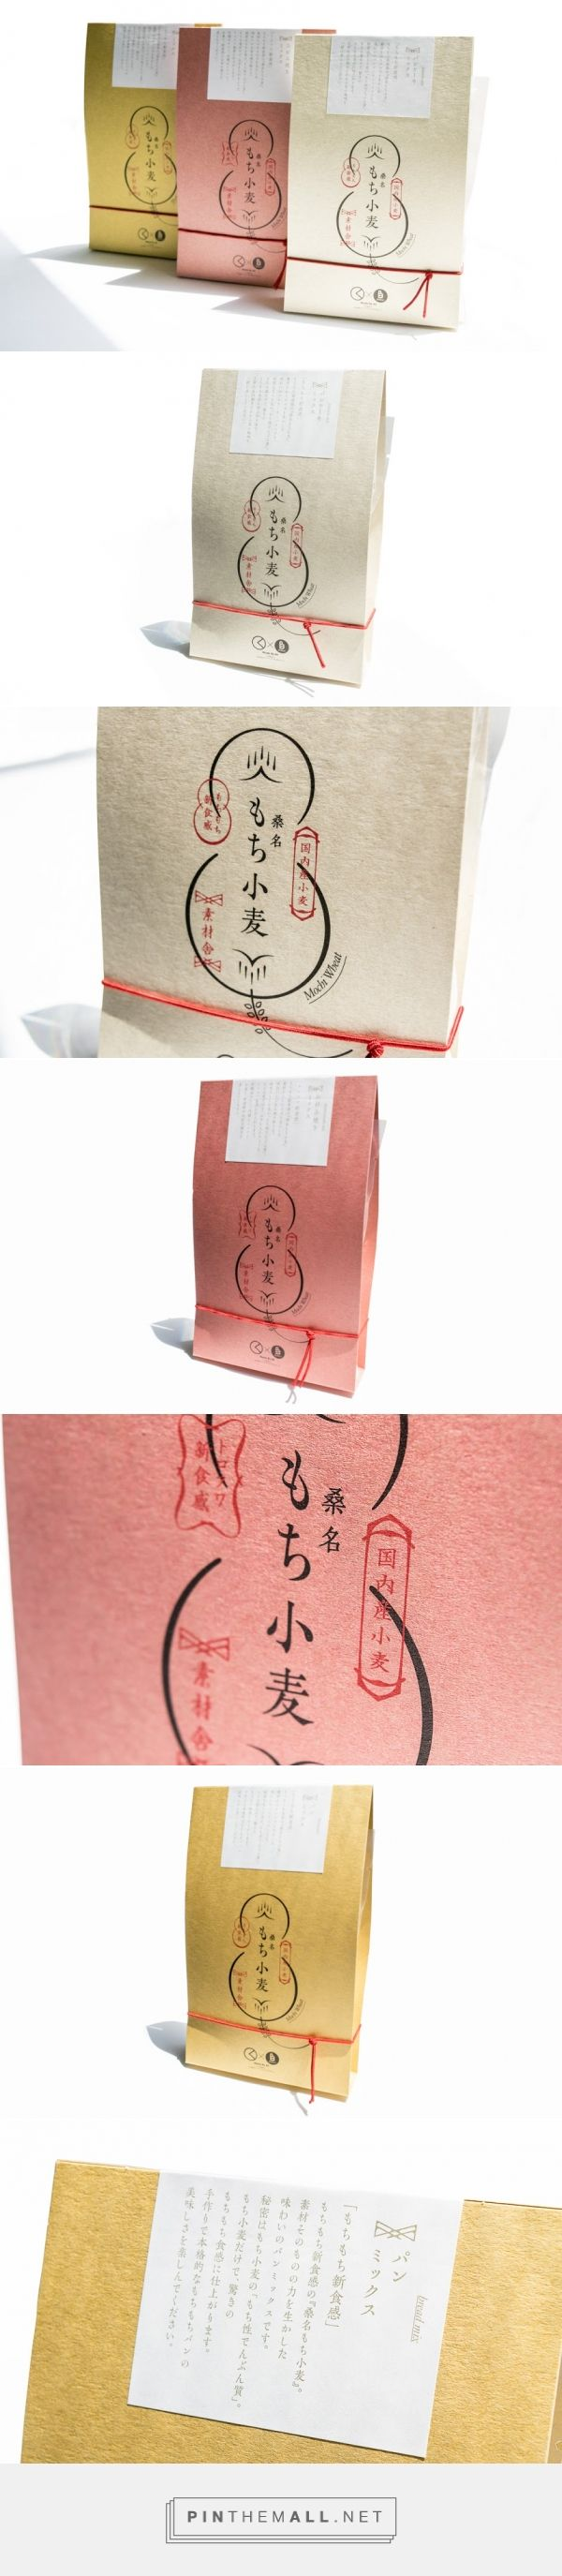 mochikomugi #Wheat #Packaging #Design by Sekilala (#Japan) - http://www.packagingoftheworld.com/2016/06/mochikomugi.html